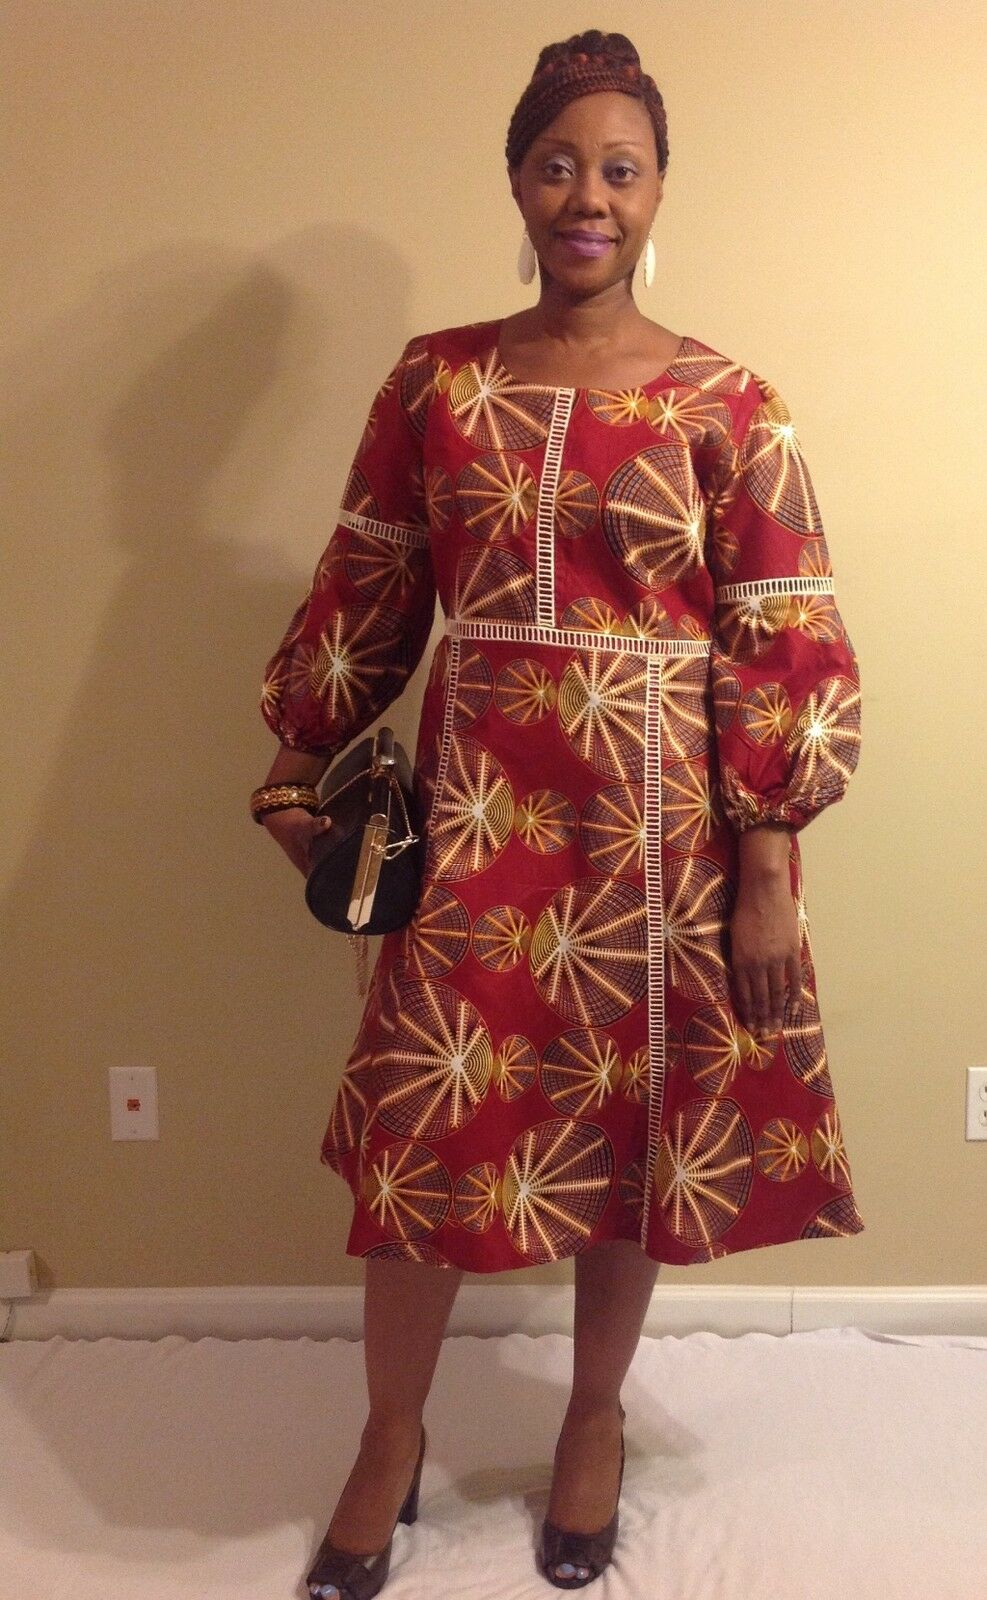 African woman dress size M,L